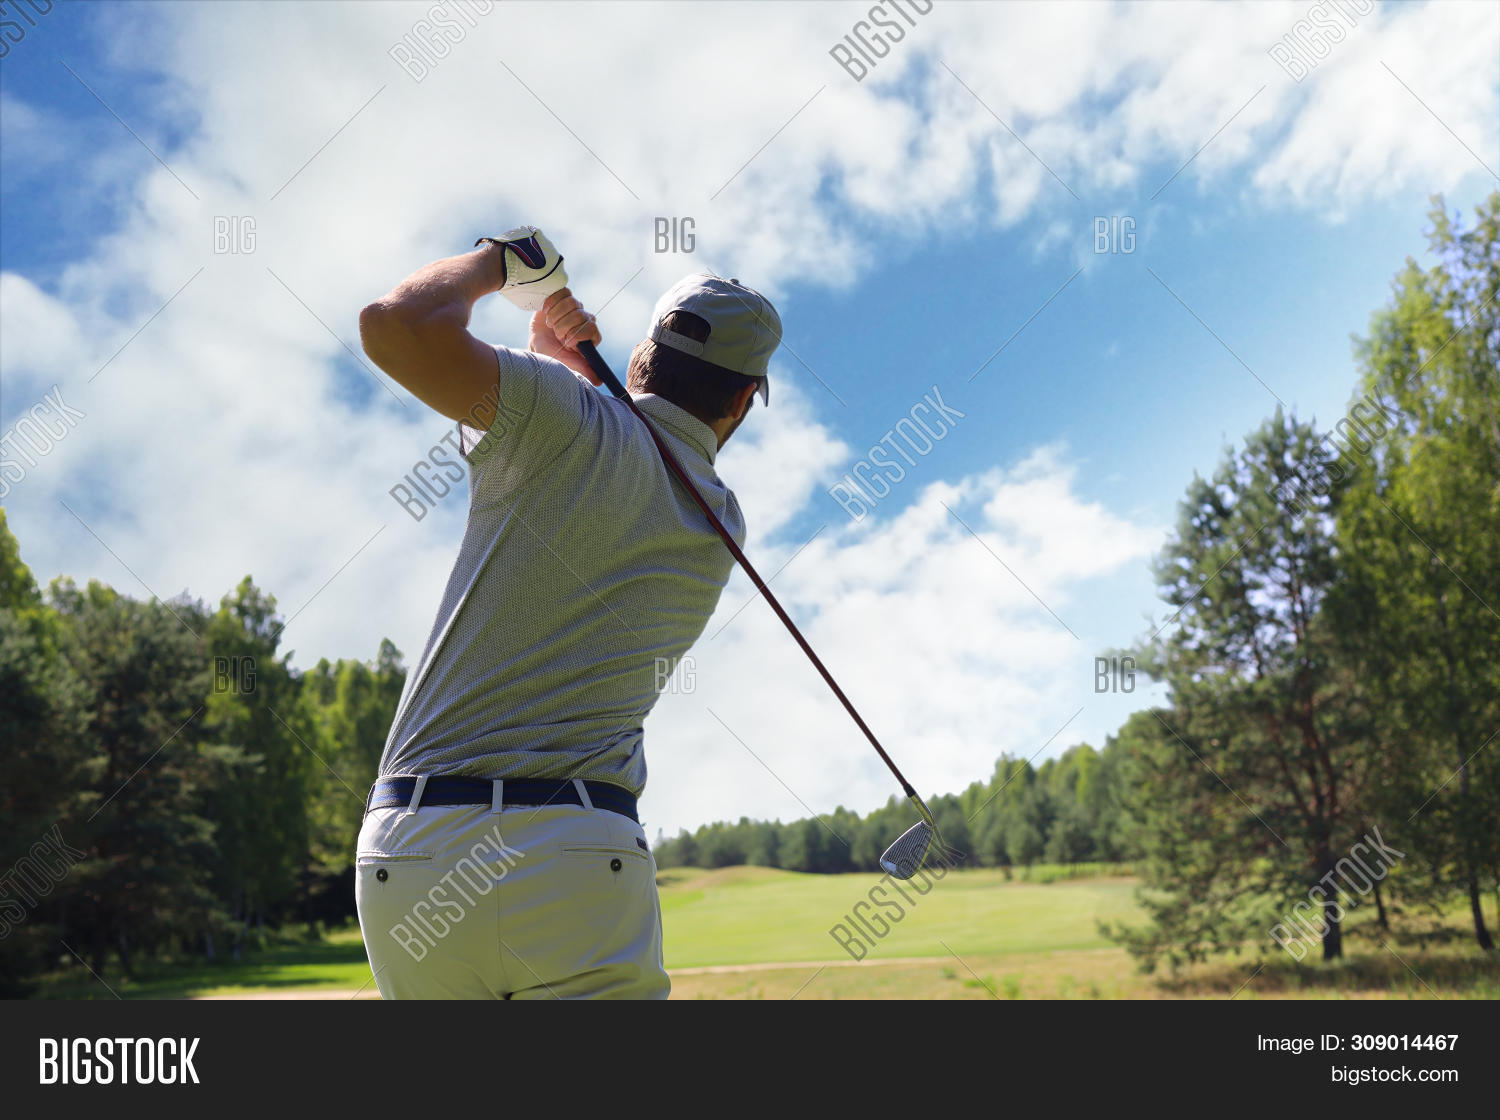 Golfer Hitting Golf Shot With Club On Course While On Summer Vacation.